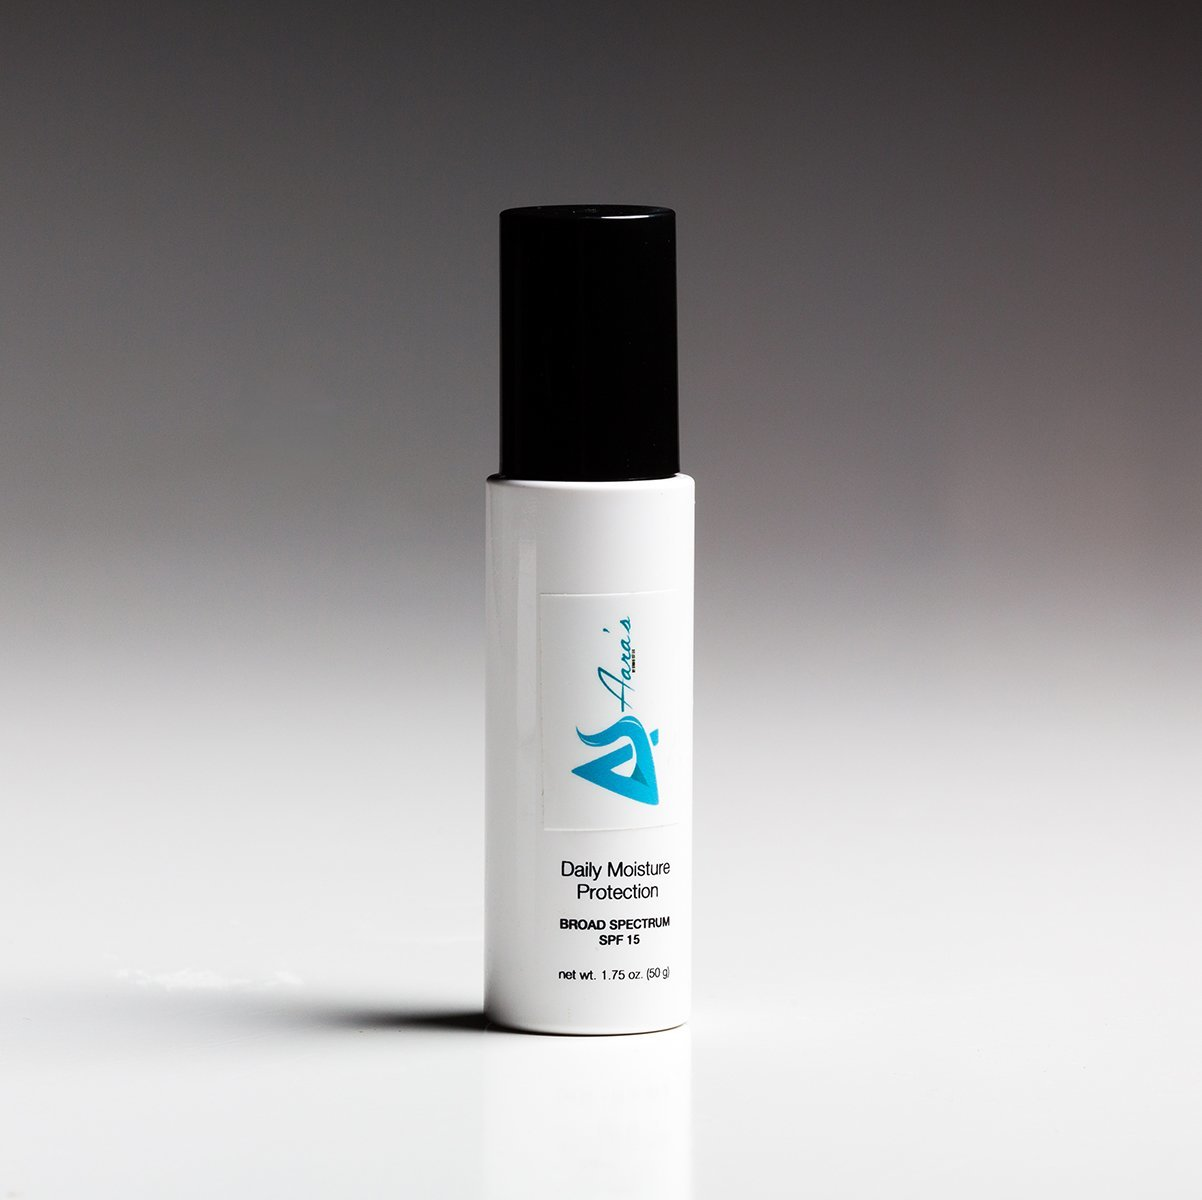 Daily Moisture Protection